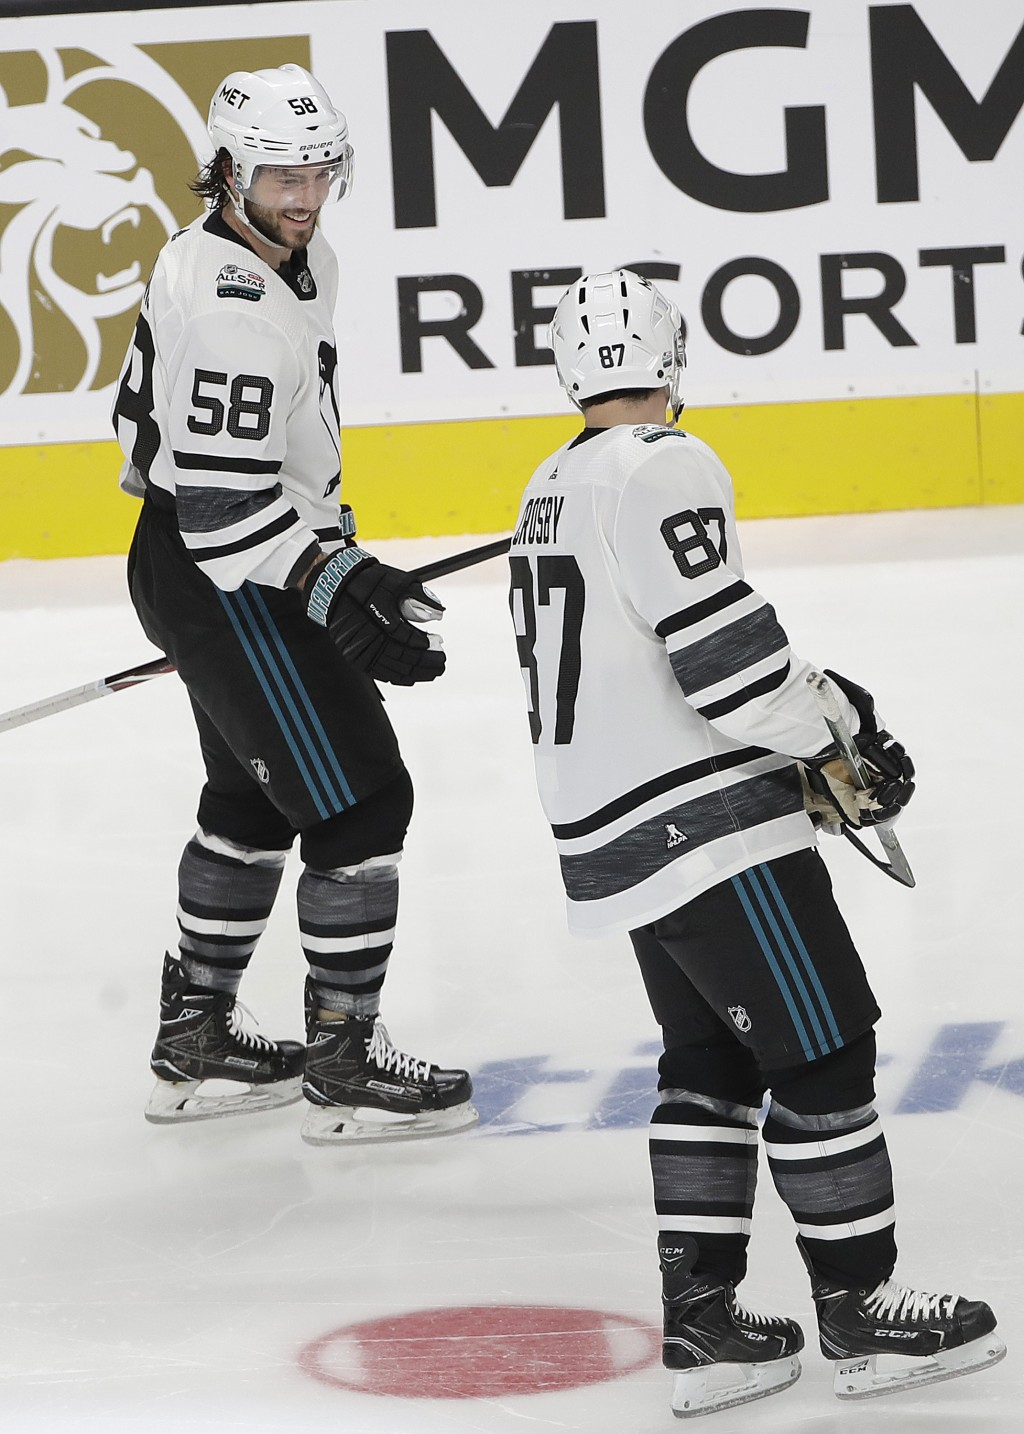 Metropolitan Division's Kris Letang, left, and Sidney Crosby, both of the Pittsburgh Penguins, celebrate after Letang scored against the Central Divis